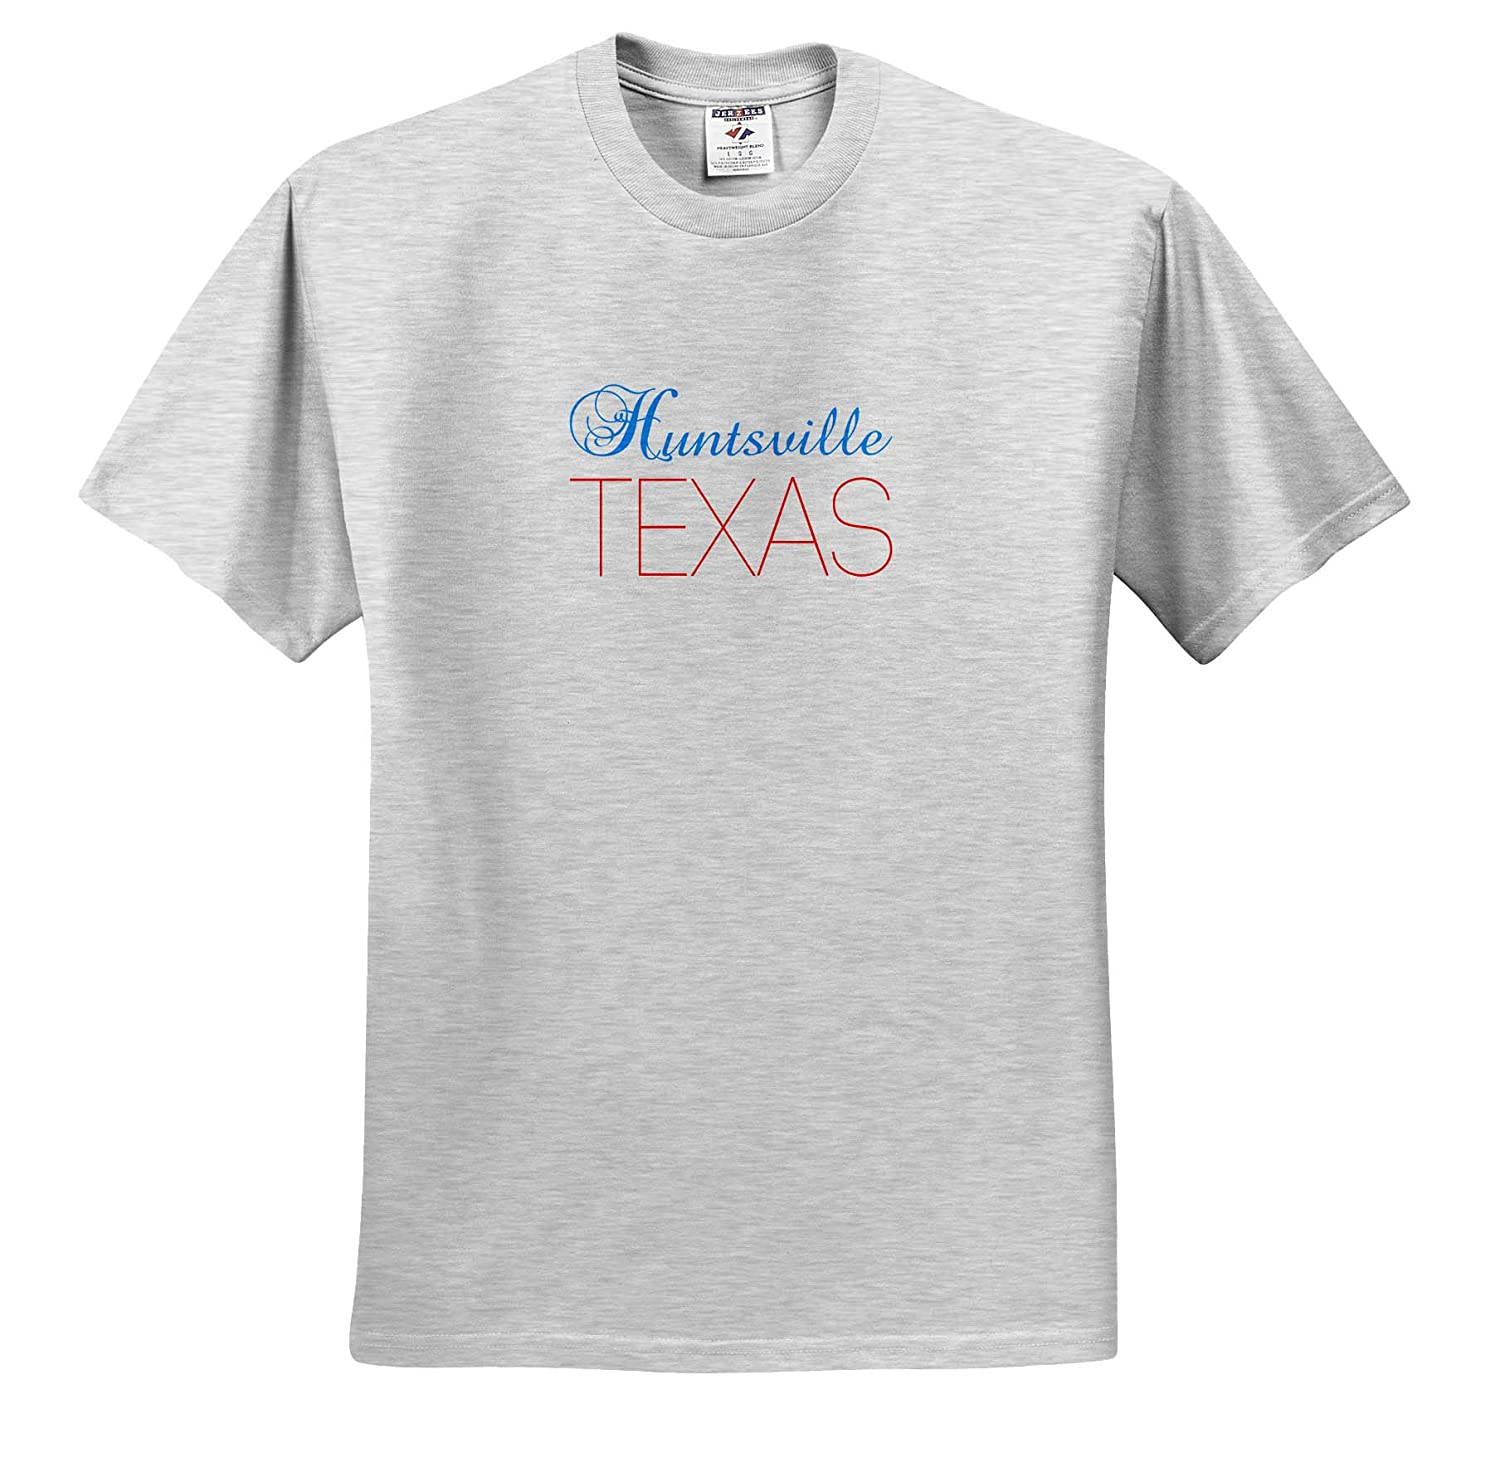 Patriotic Home Town Design 3dRose Alexis Design Huntsville T-Shirts Texas red Blue Text American Cities Texas